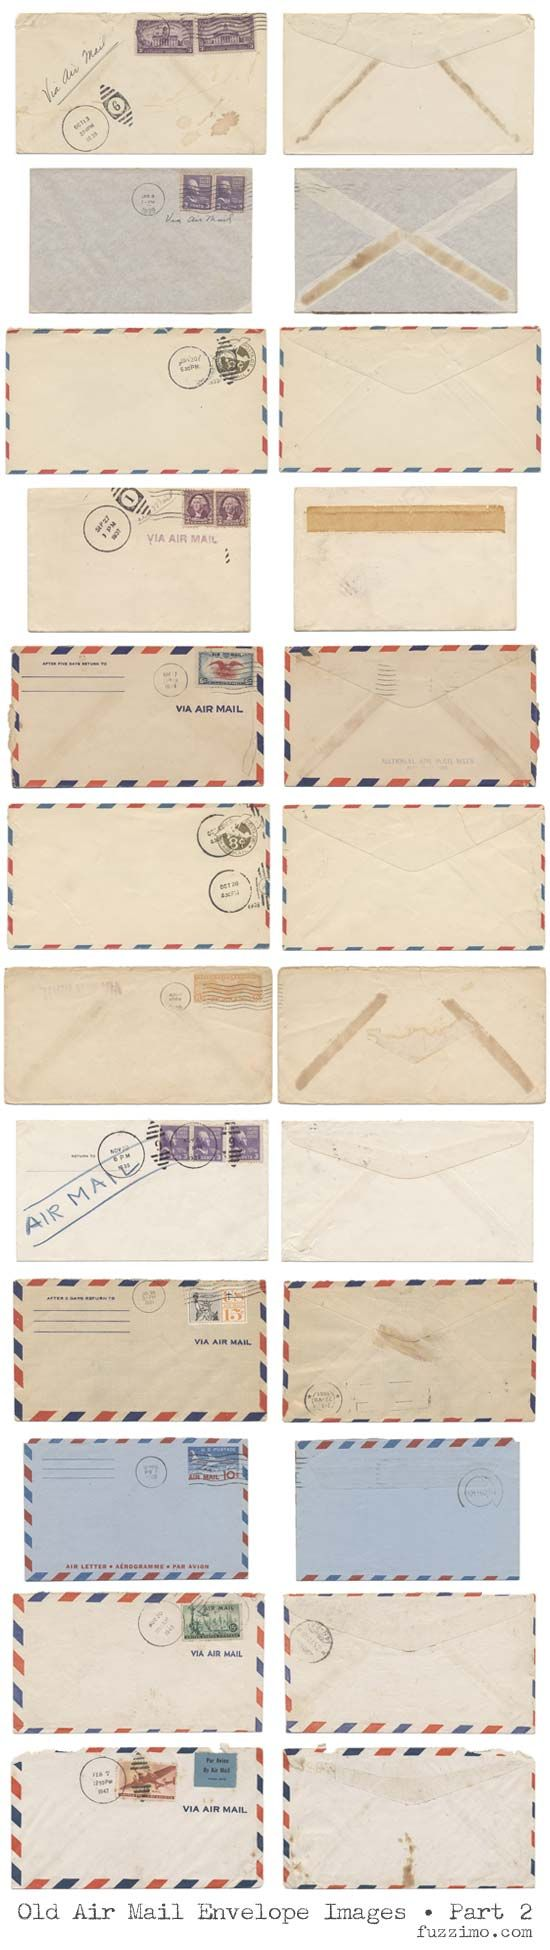 fuzzimo shares printable old airmail envelopes (there is a earlier part to the post with more as well.